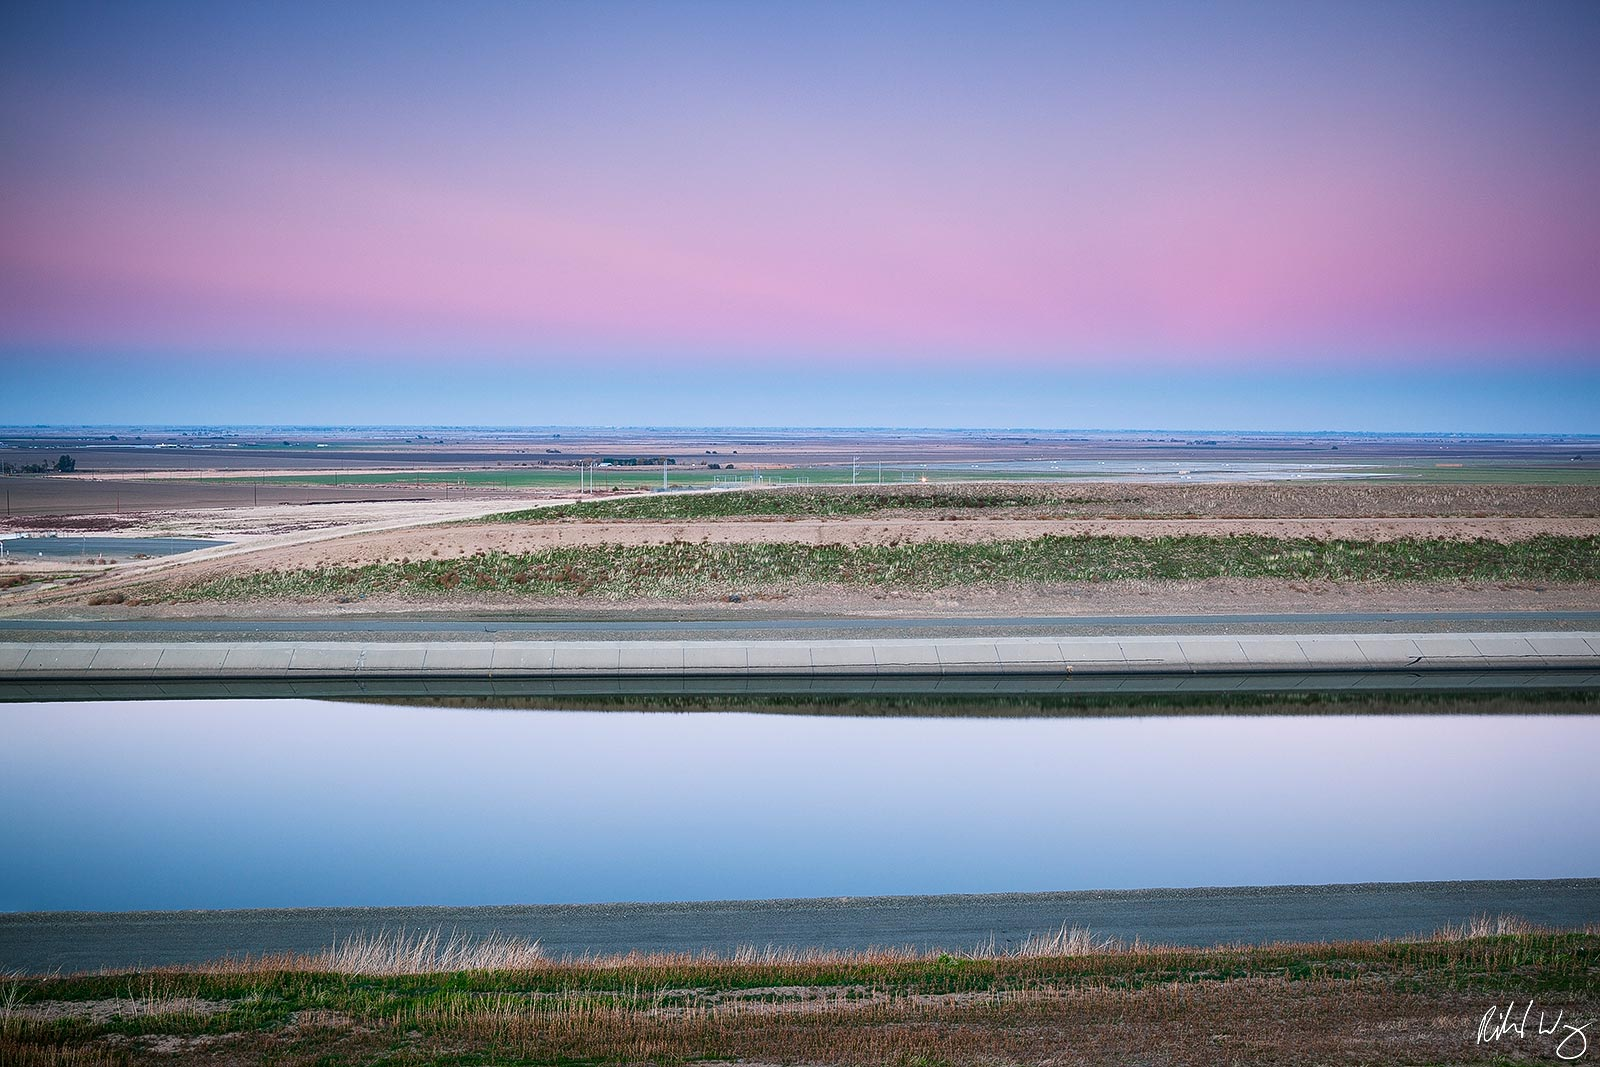 The California Aqueduct, San Joaquin Valley, California